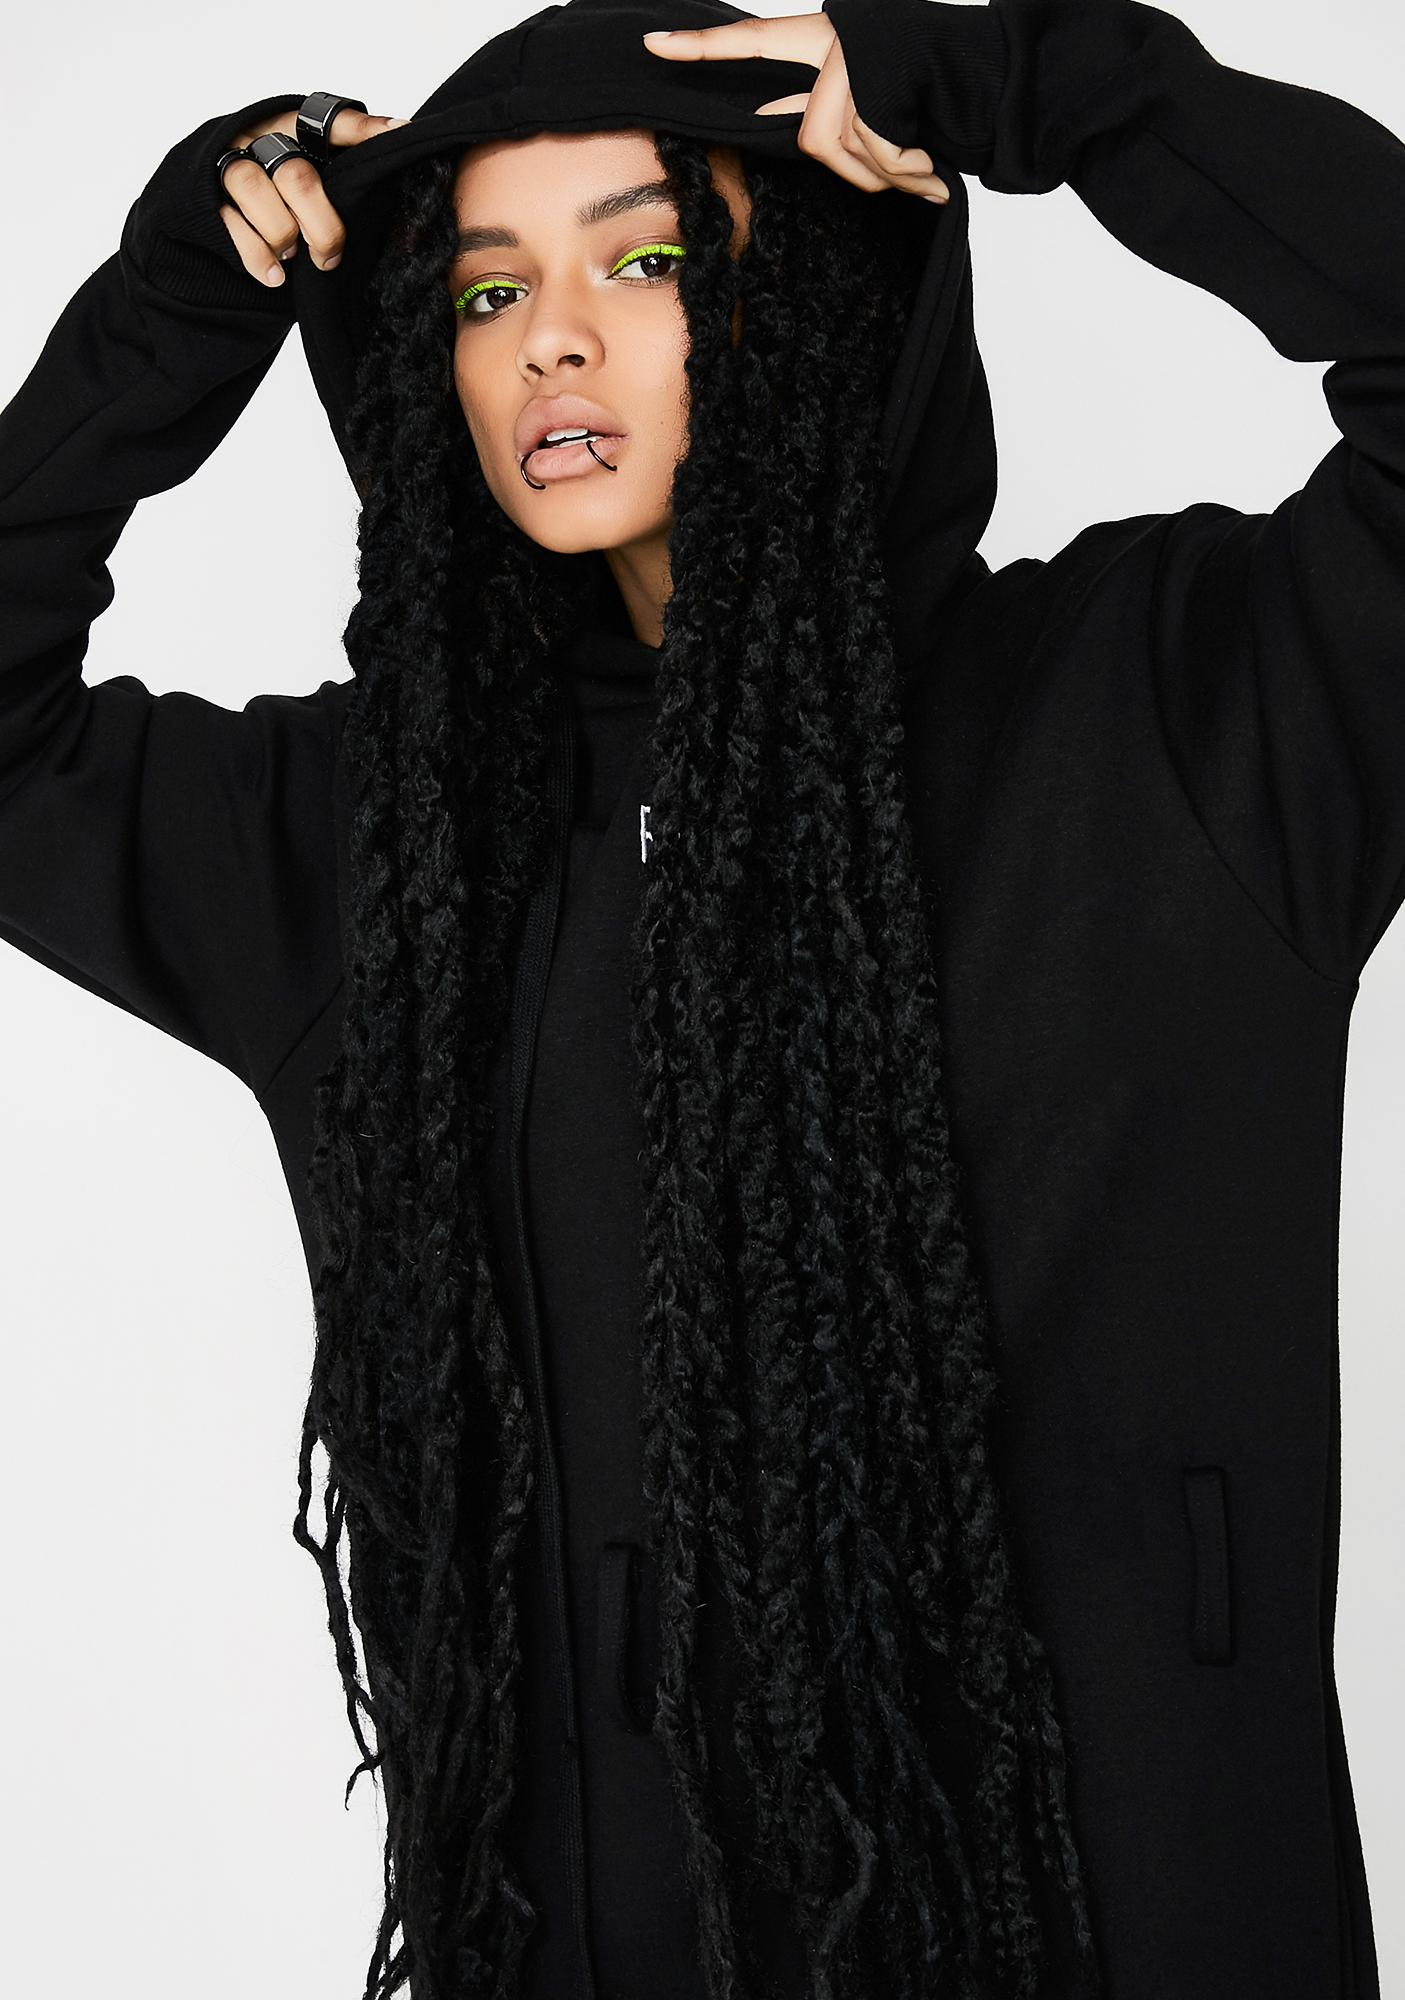 Demian Renucci Oversized Hoody Dress